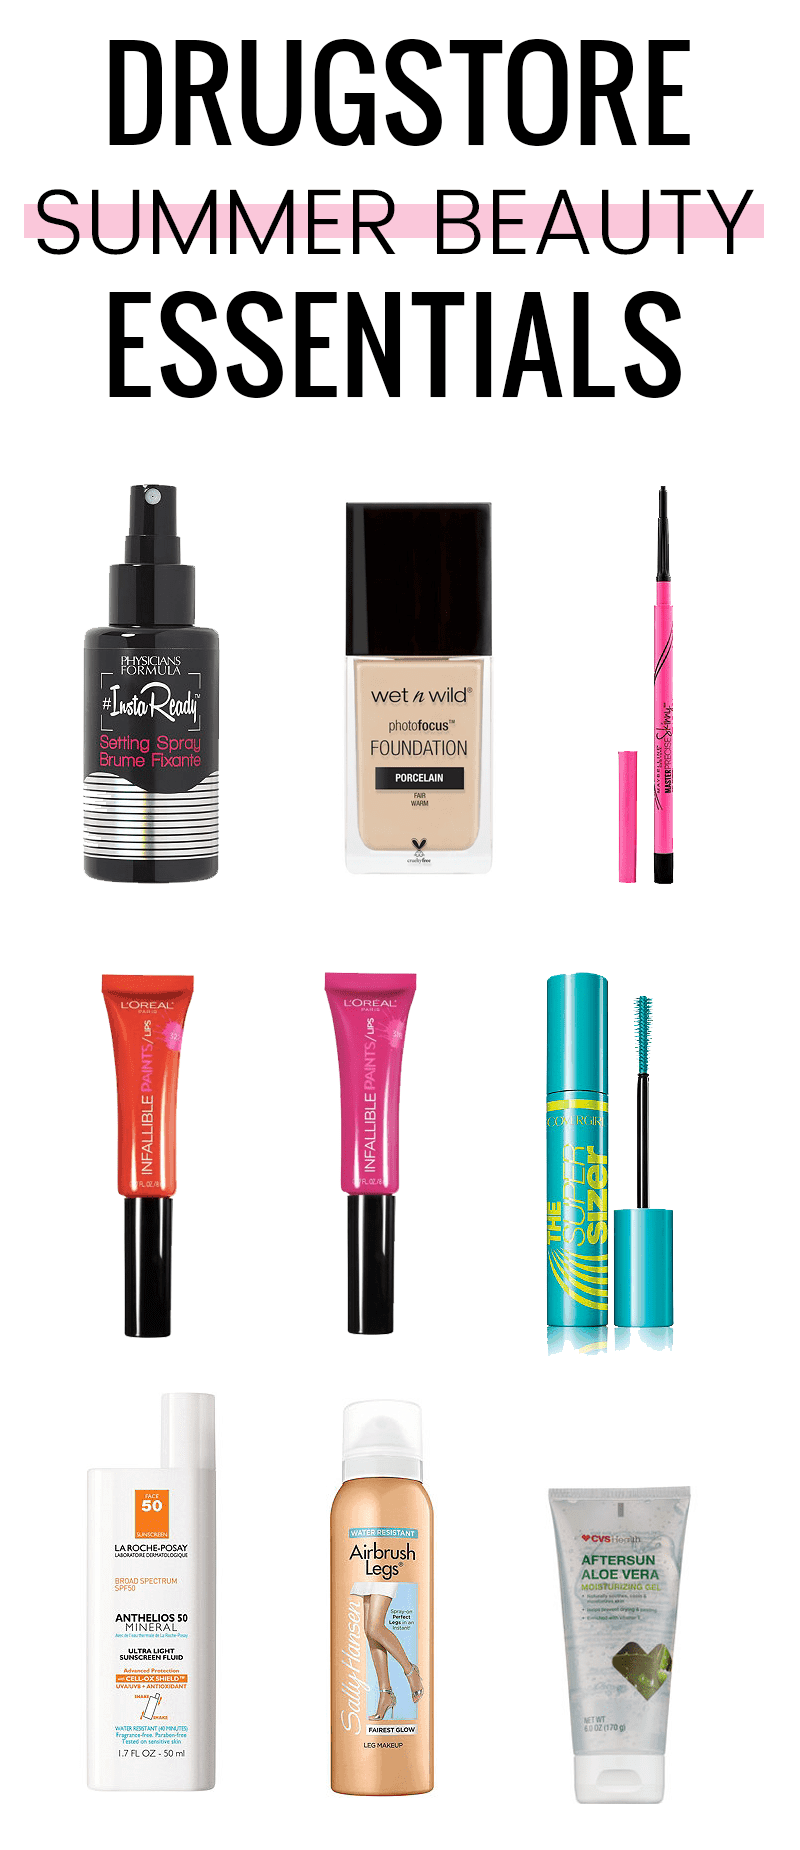 Drugstore Summer Beauty Essentials from CVS by popular beauty blogger Meg O. on the Go